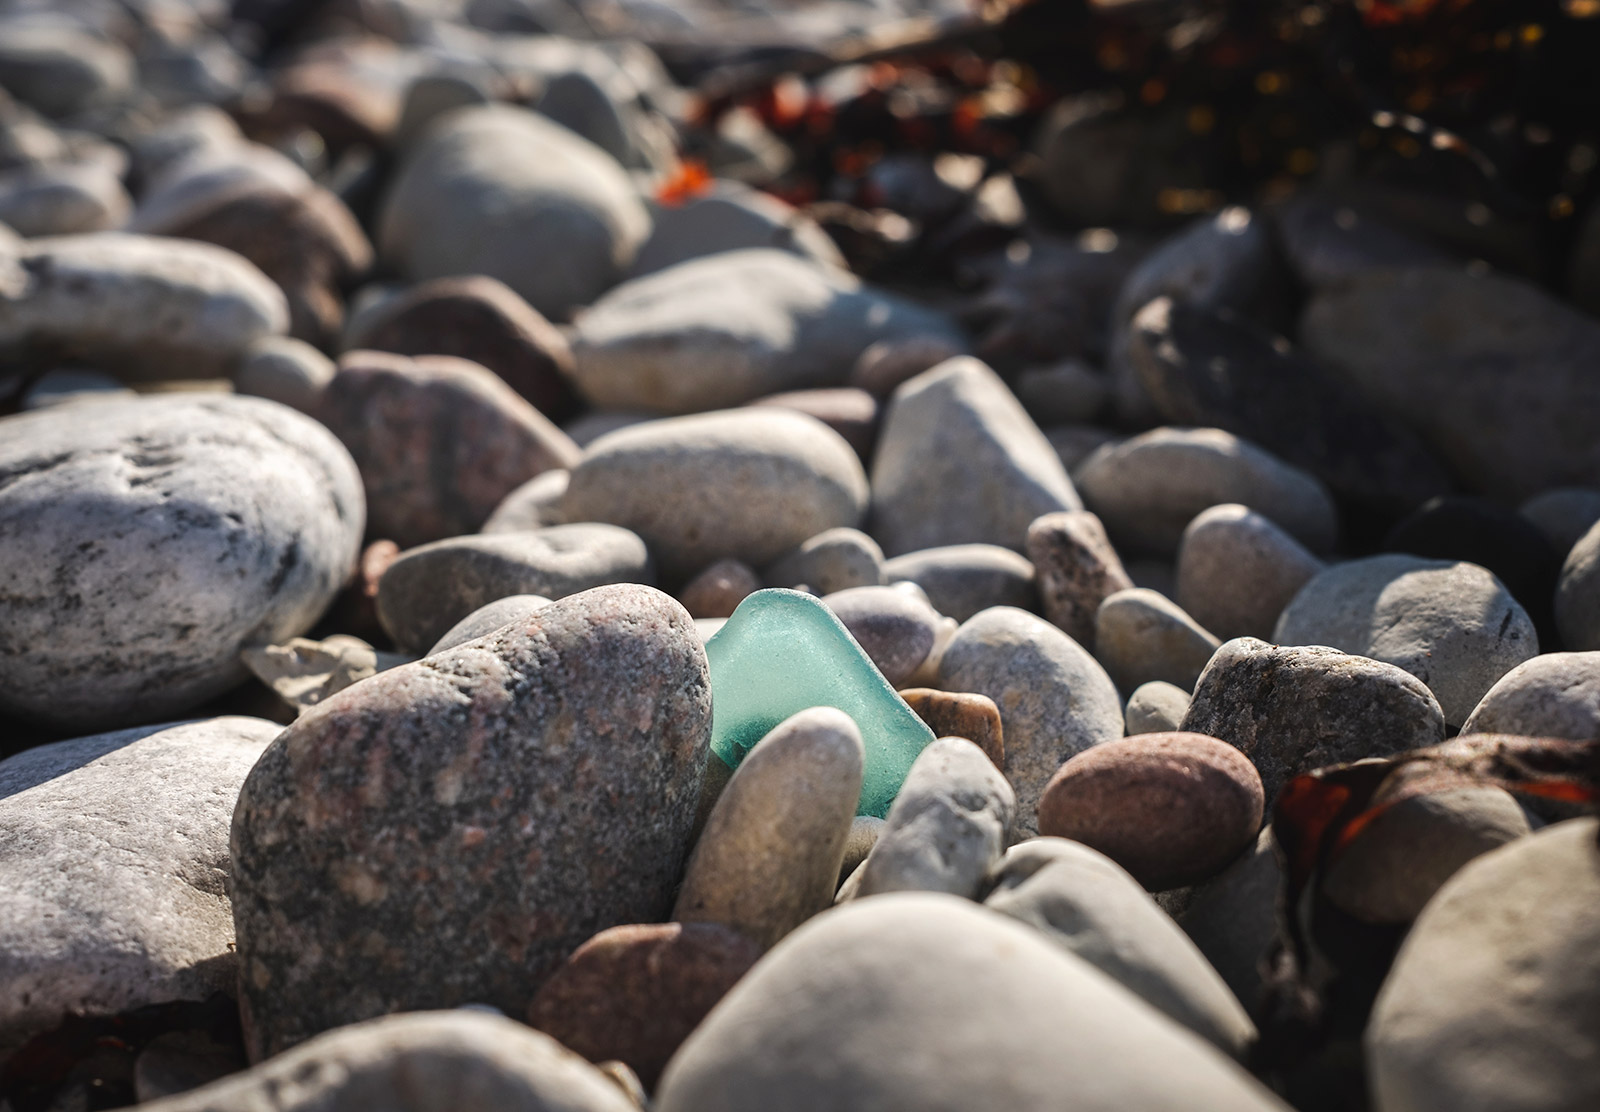 Turquoise glass on pebbles